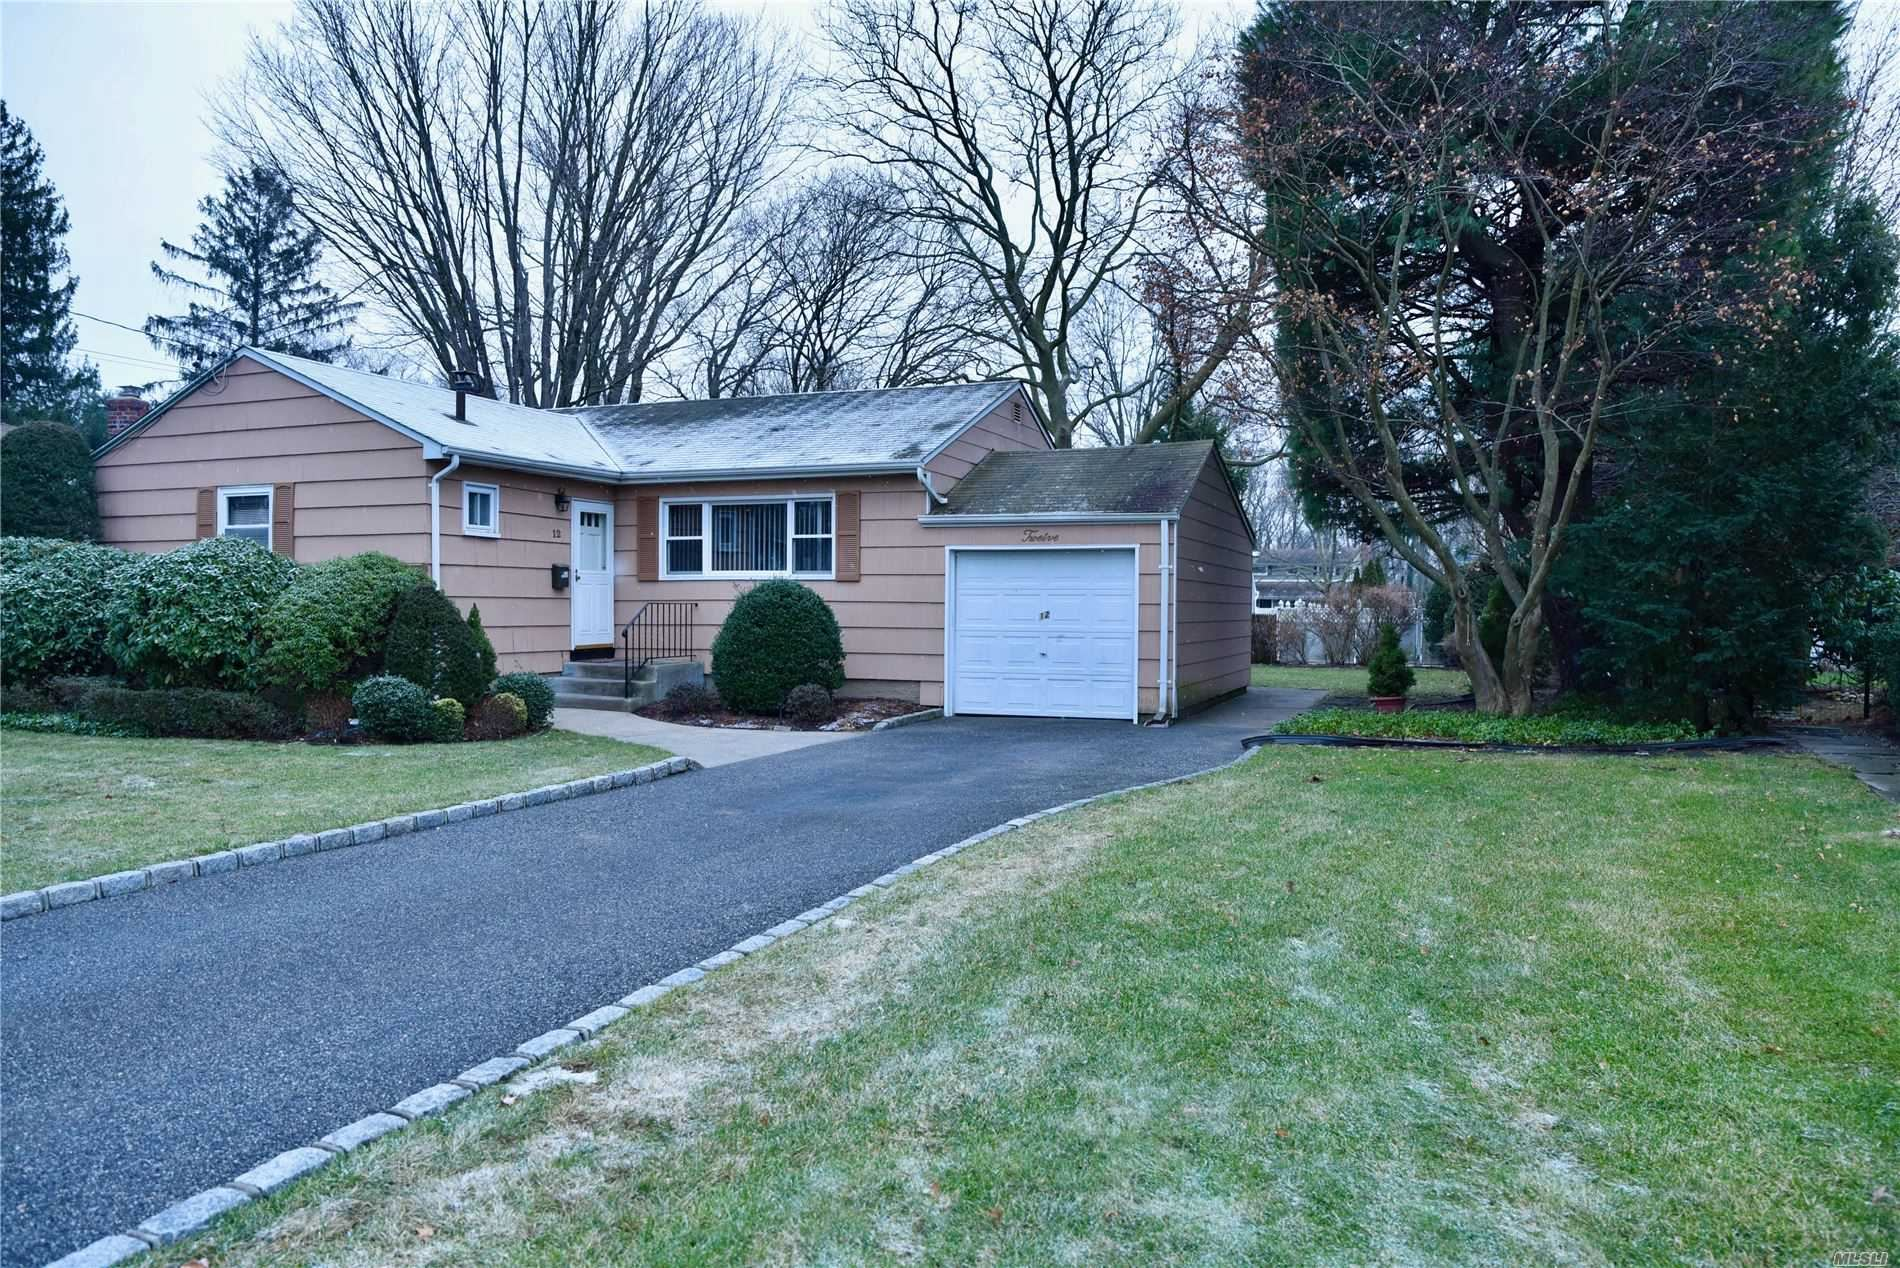 12 Rocco Drive, East Northport, NY 11731 - MLS#: 3190219